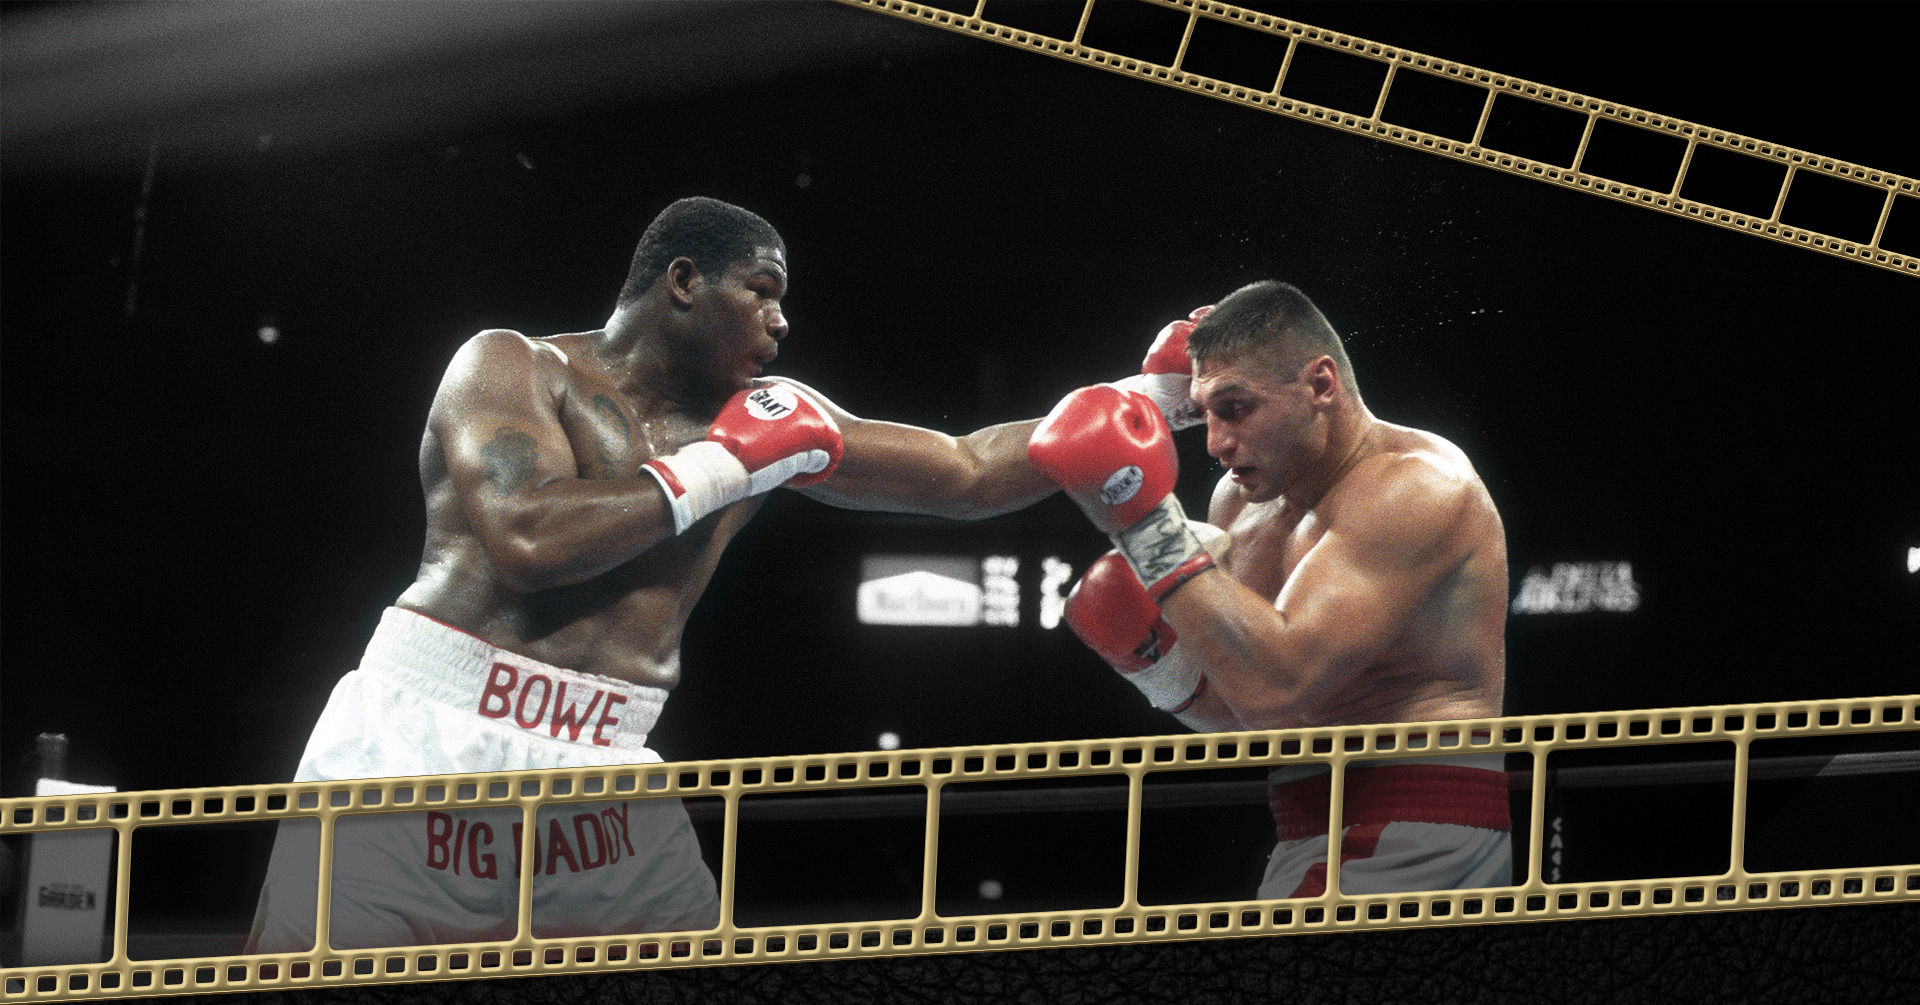 Boxing match between Riddick Bowe and Andrew Golota with decorative gold film roll on the bottom and top right corner of the picture